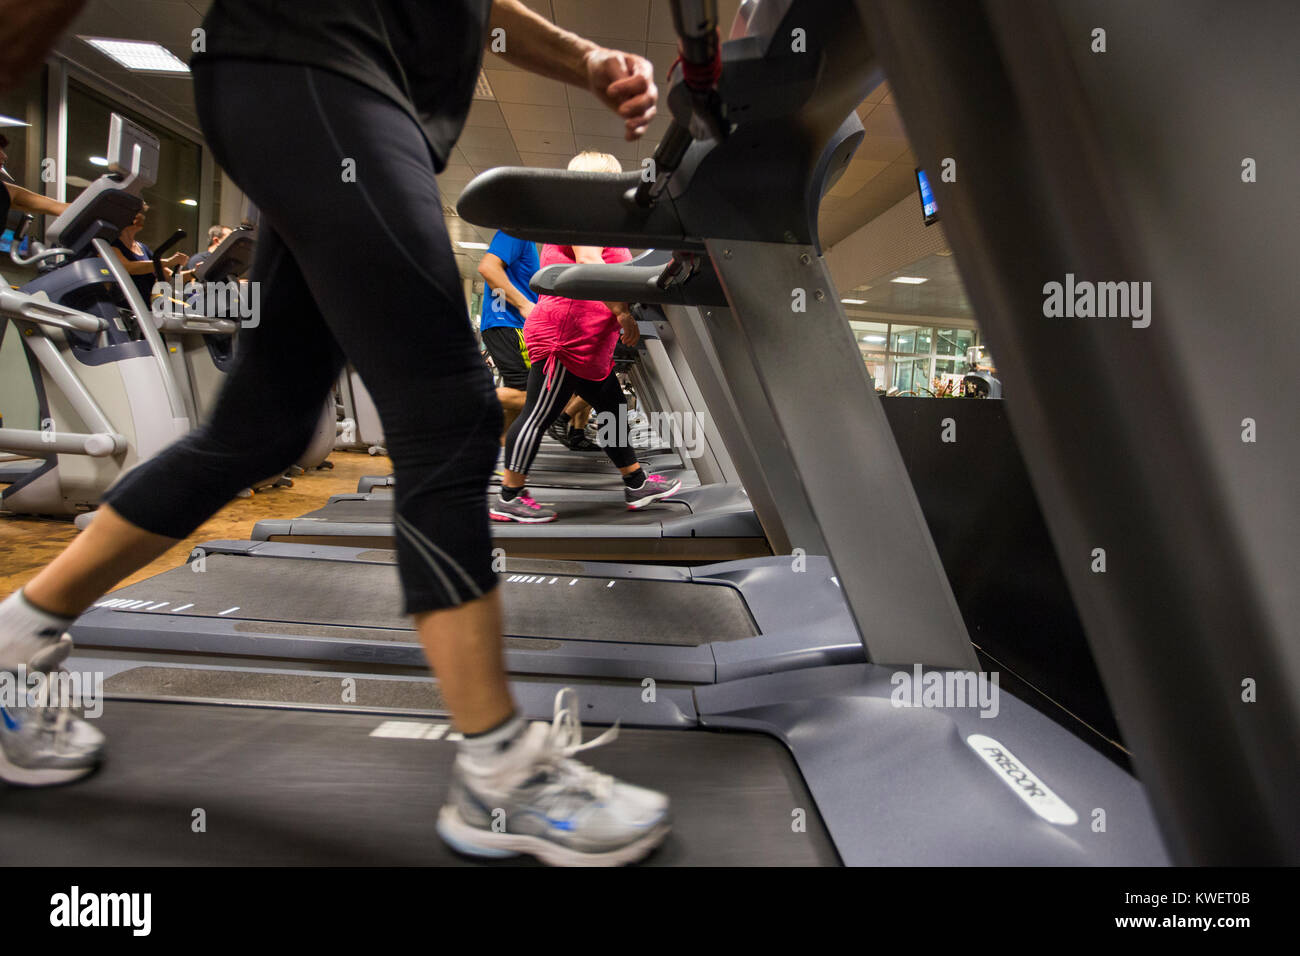 Exercise at the gym, Sollentuna, Sweden. - Stock Image